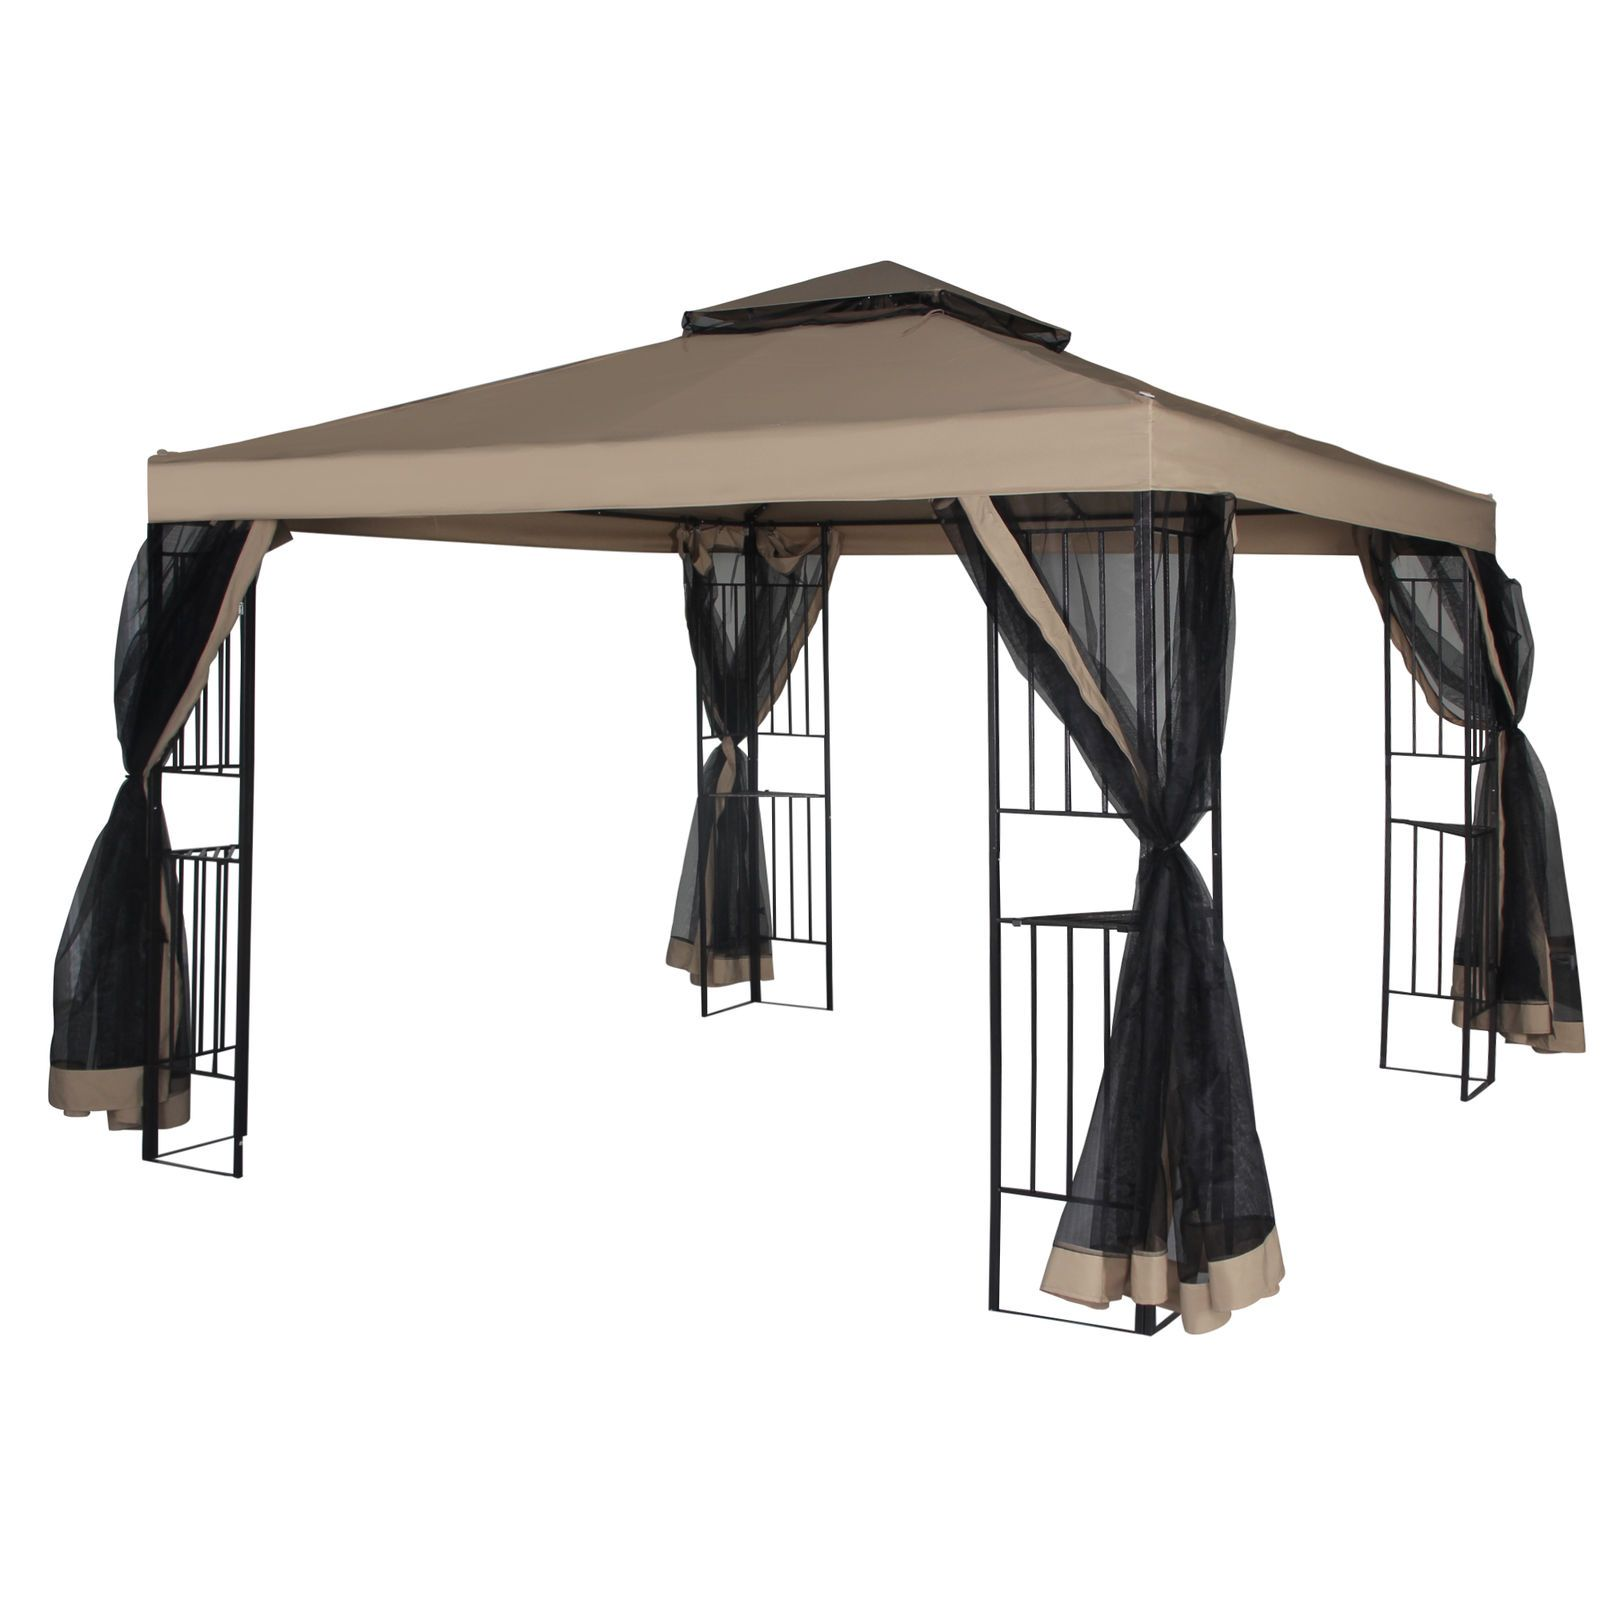 Patio Gazebo Canopy 10 X 10ft Backyard Double Roof Vented W Mosquito Netting With Images Backyard Gazebo Gazebo Gazebo Canopy